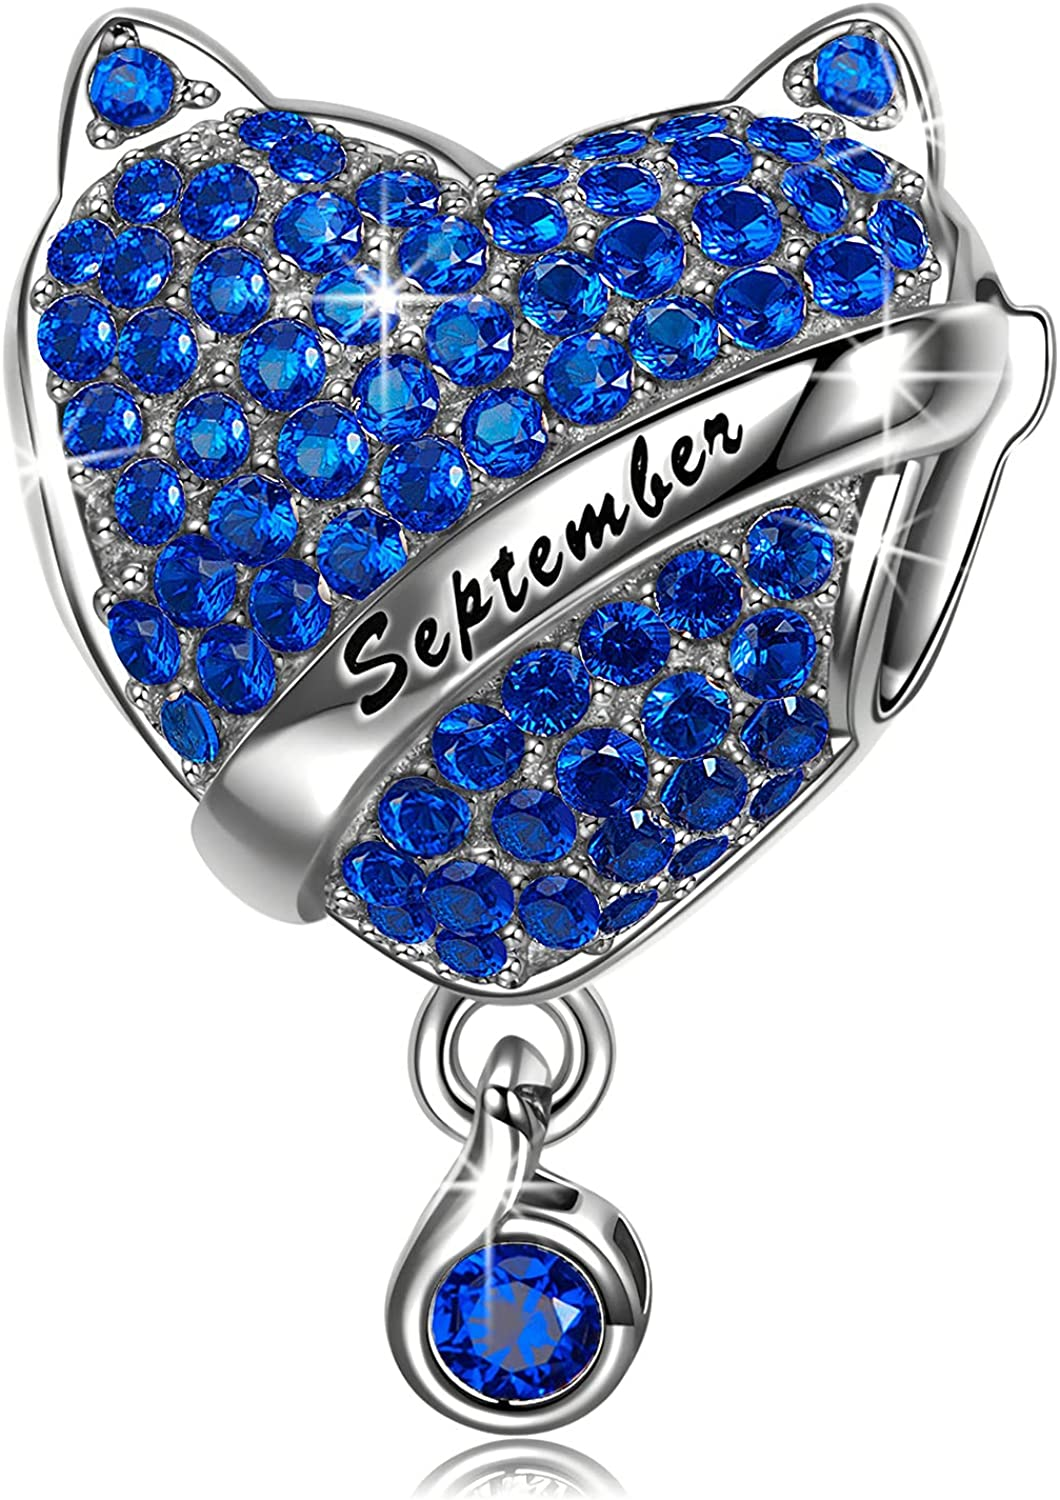 NINAQUEEN Birthstone Charms 925 Sterling Max gift 68% OFF Silver with Beads Made